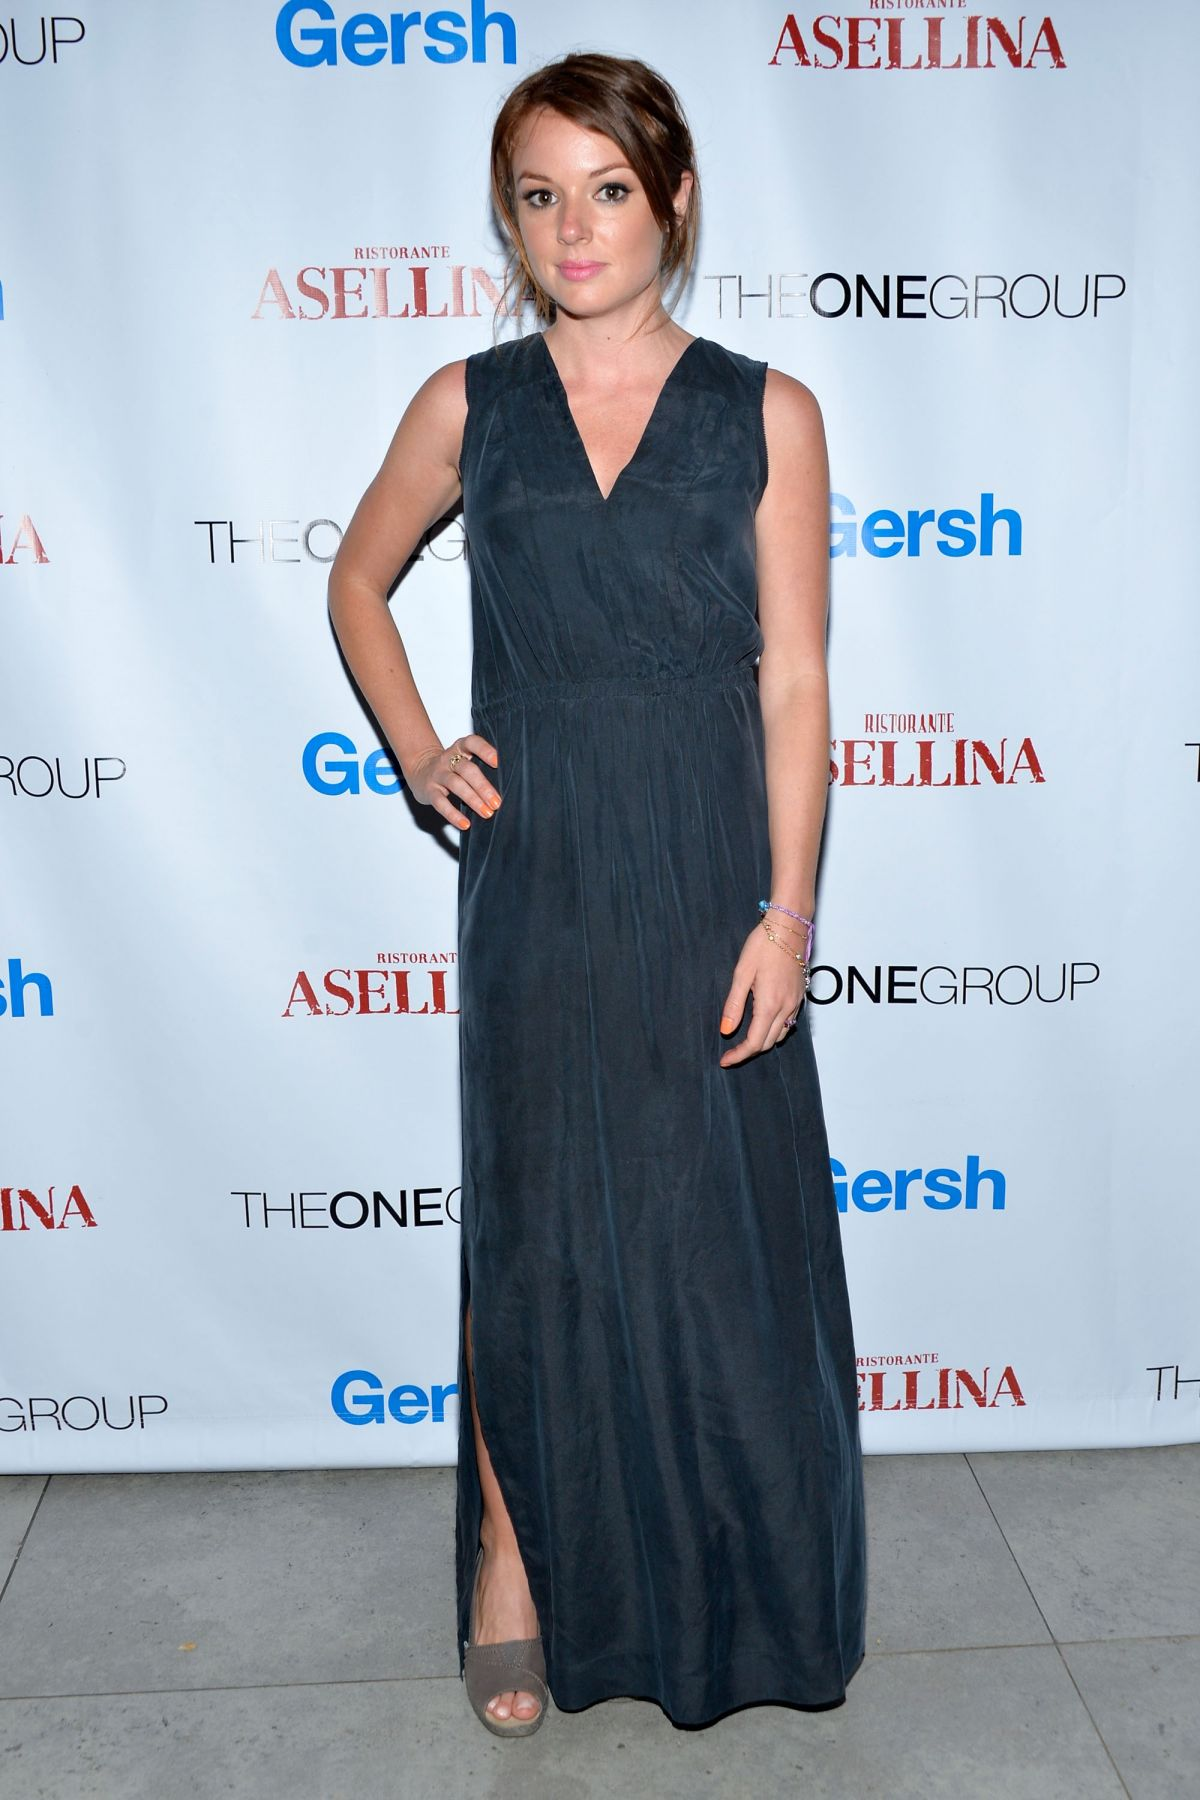 AUBREY DOLLAR at Gersh Upfronts Party in New York